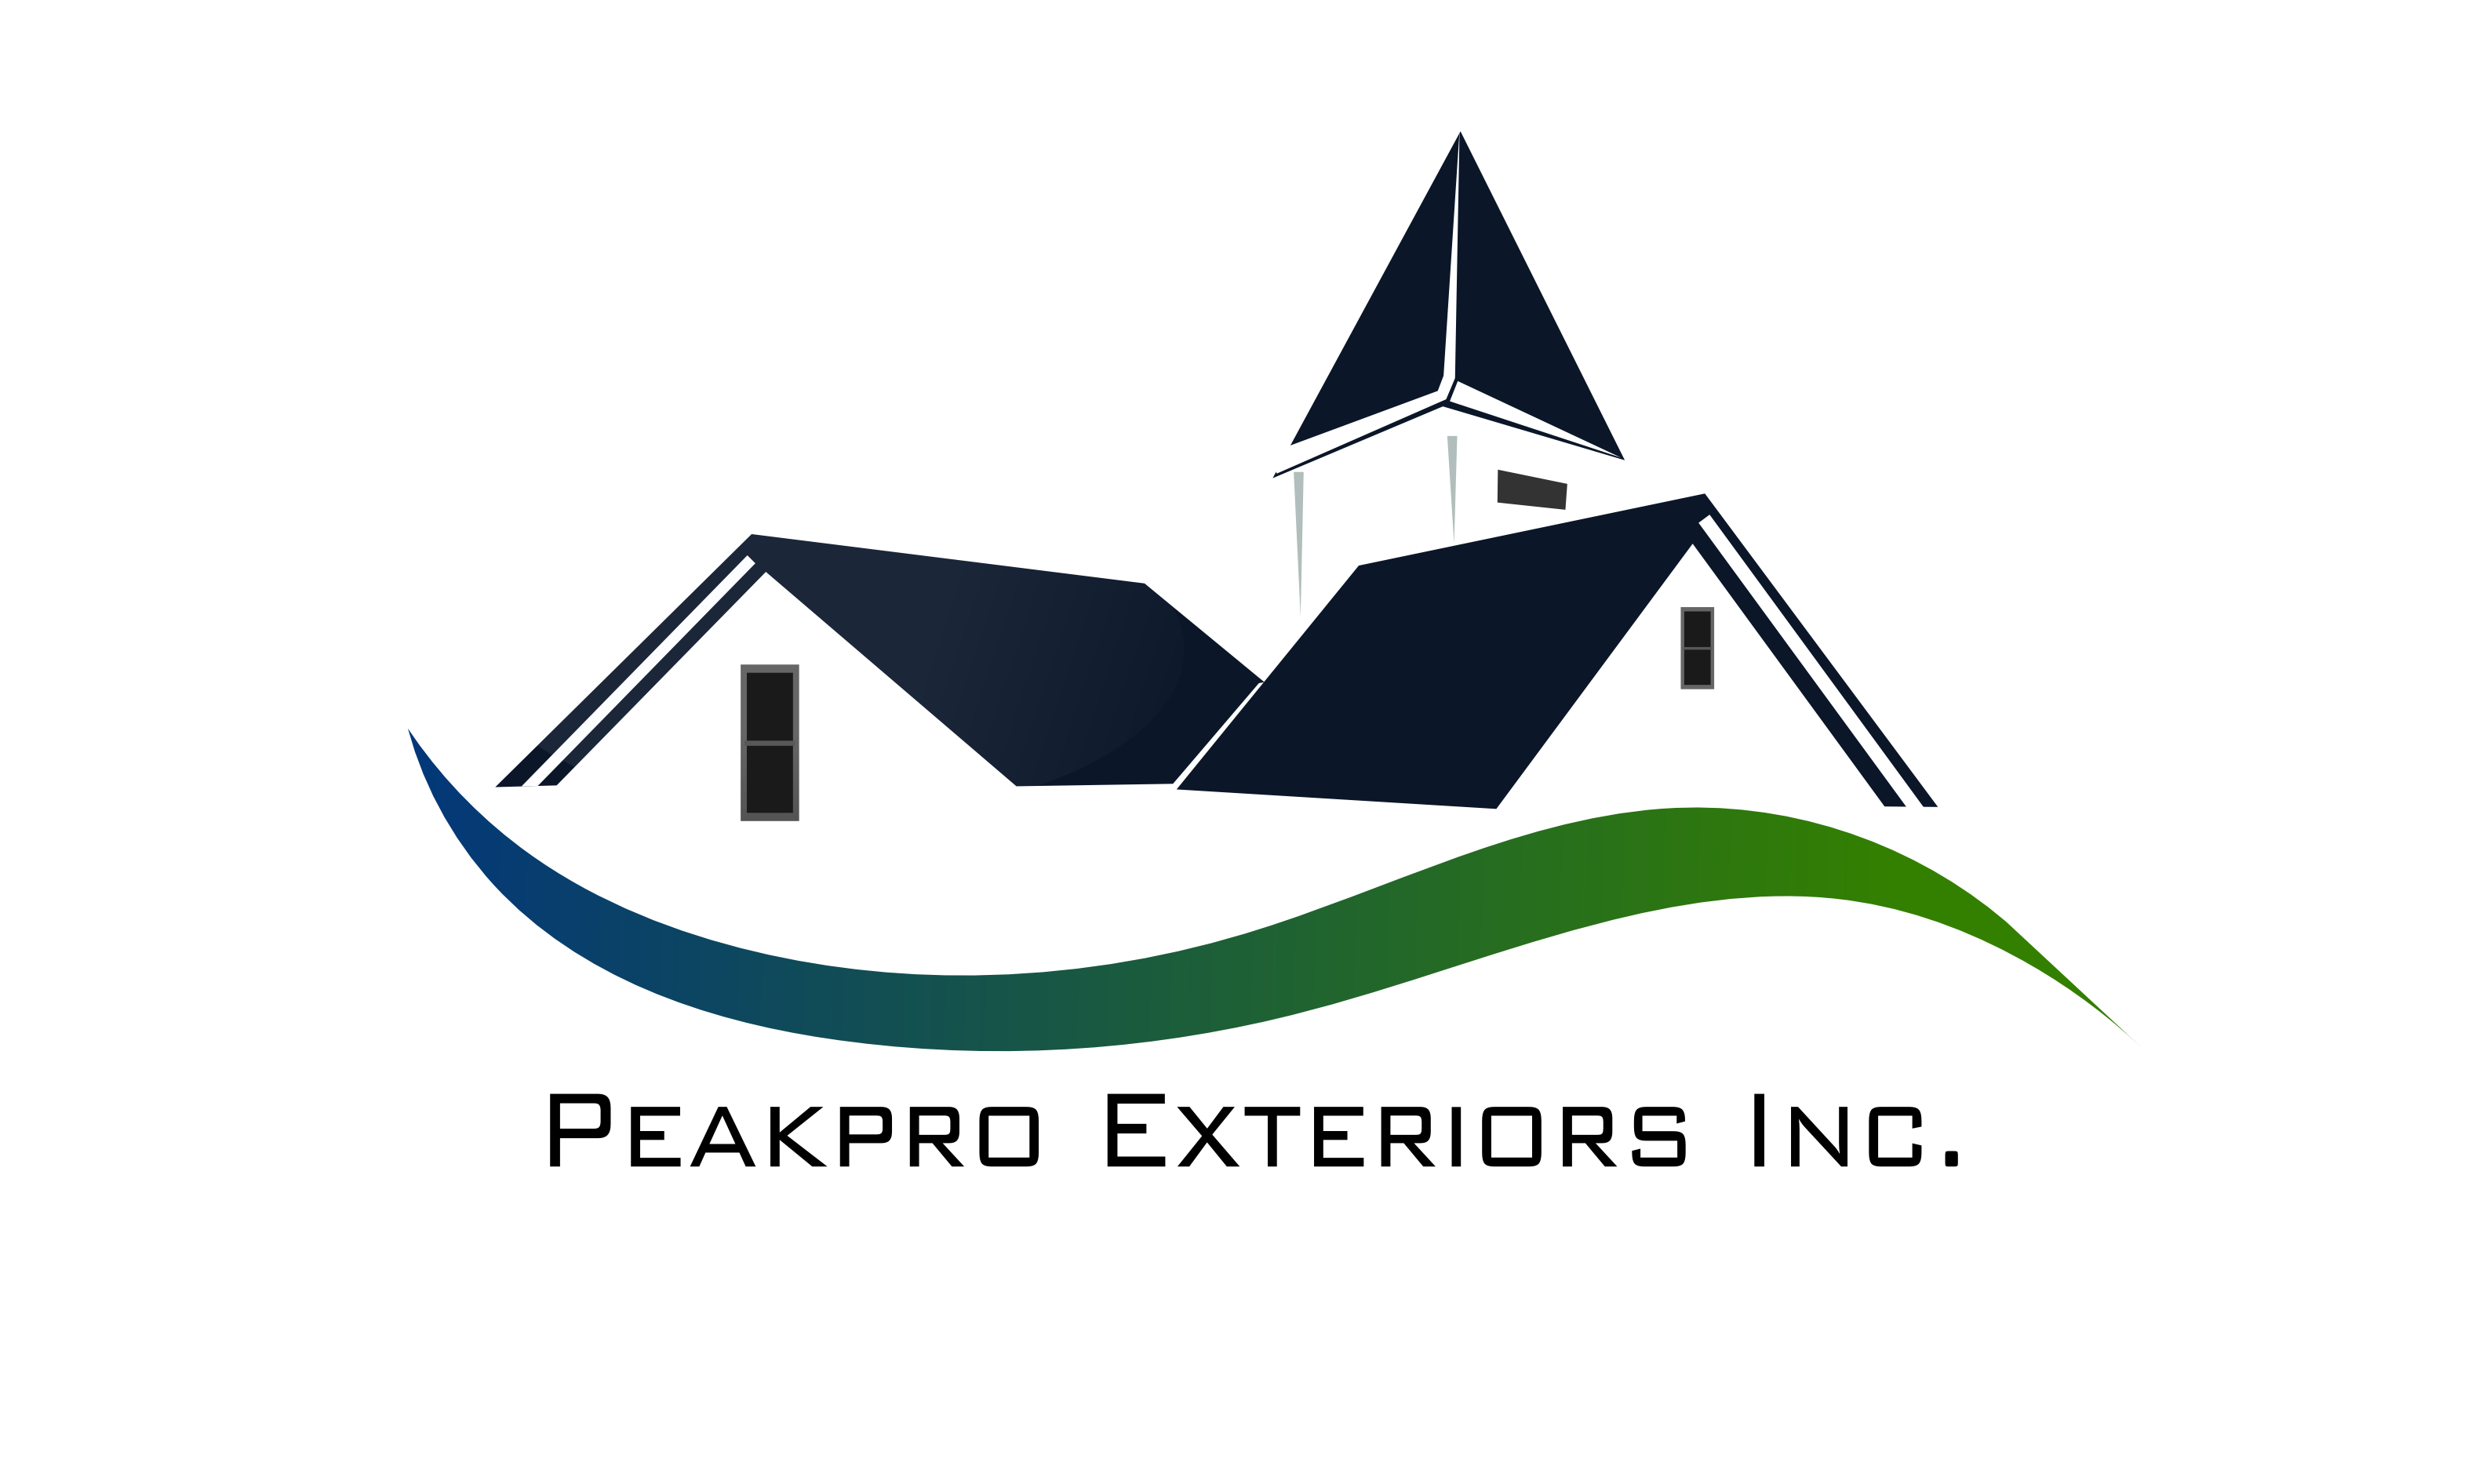 Logo Design by Arindam Khanda - Entry No. 65 in the Logo Design Contest Captivating Logo Design for Peakpro Exteriors Inc..